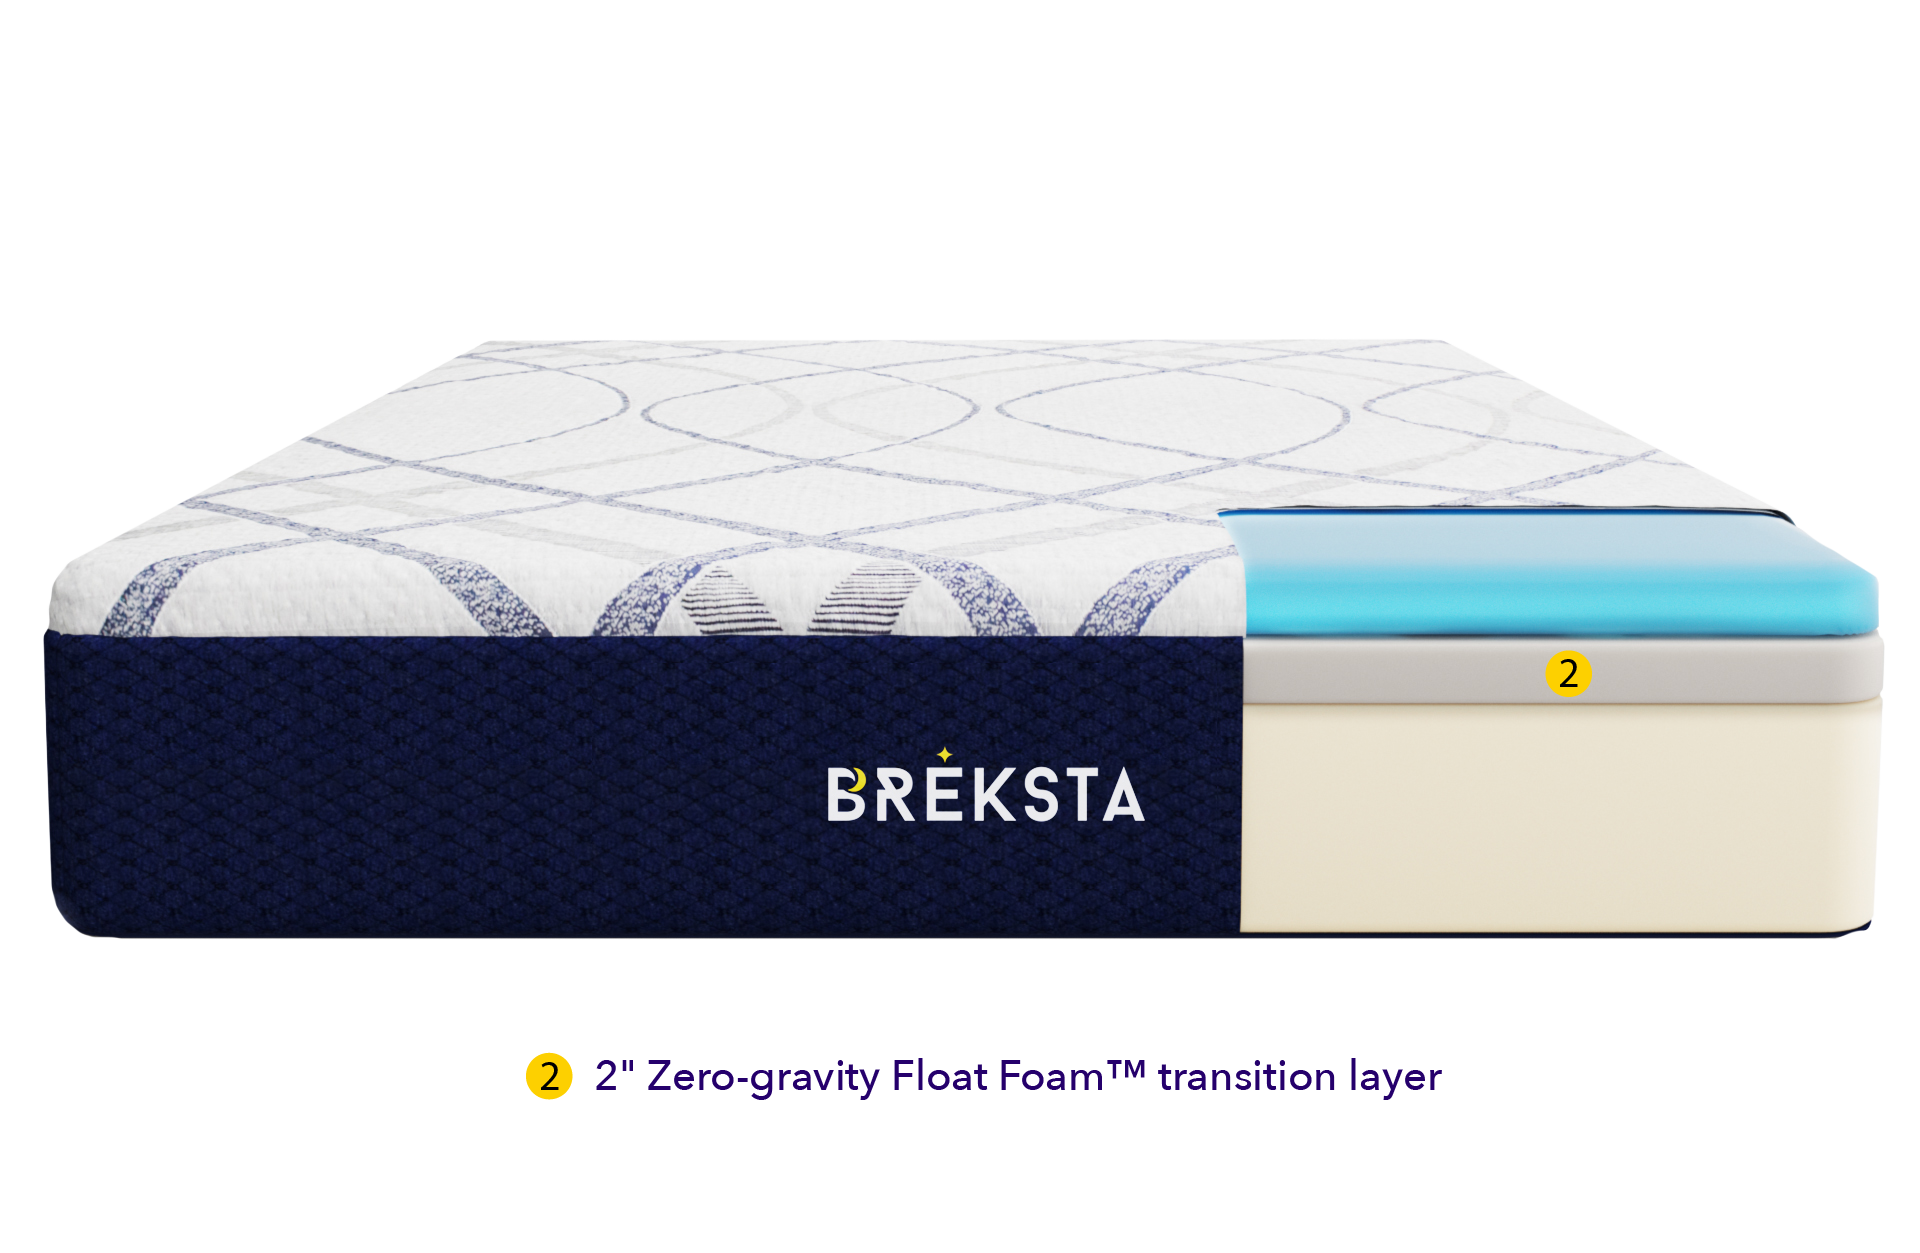 breksta cooling foam mattress